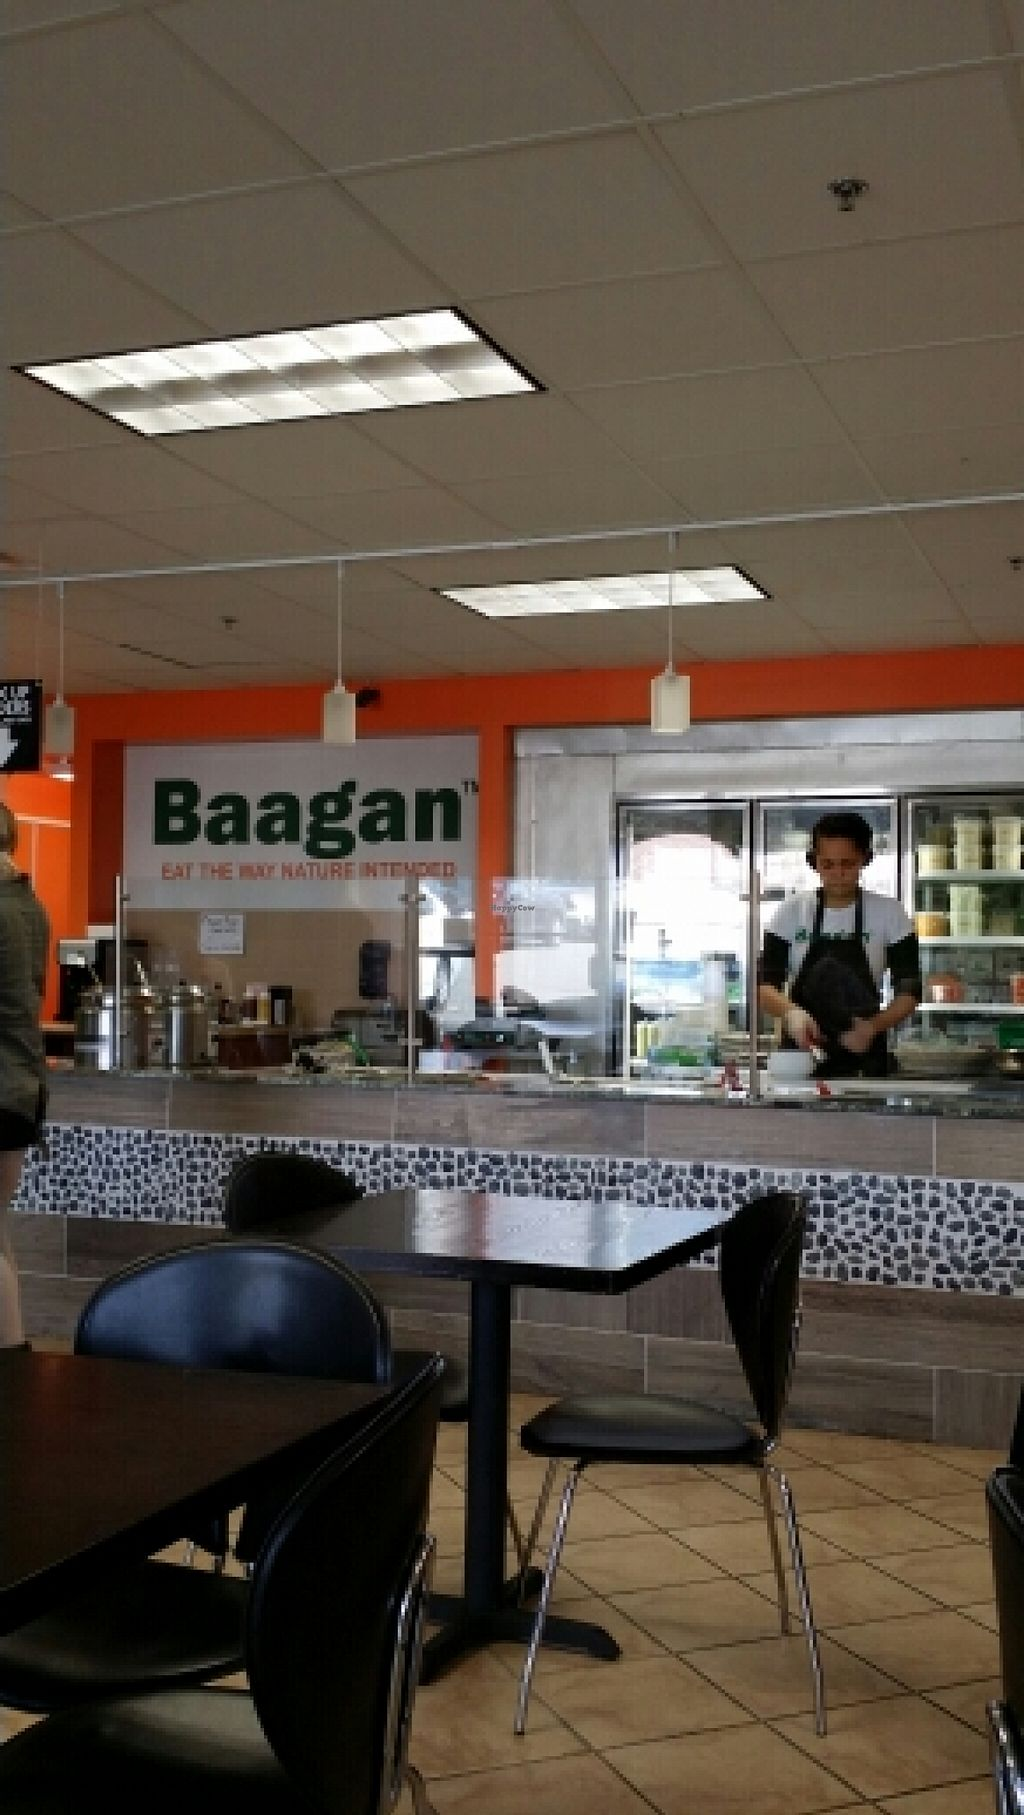 """Photo of CLOSED: Baagan  by <a href=""""/members/profile/catbone"""">catbone</a> <br/>The Order & Pick Up Counter <br/> February 15, 2016  - <a href='/contact/abuse/image/27372/136385'>Report</a>"""